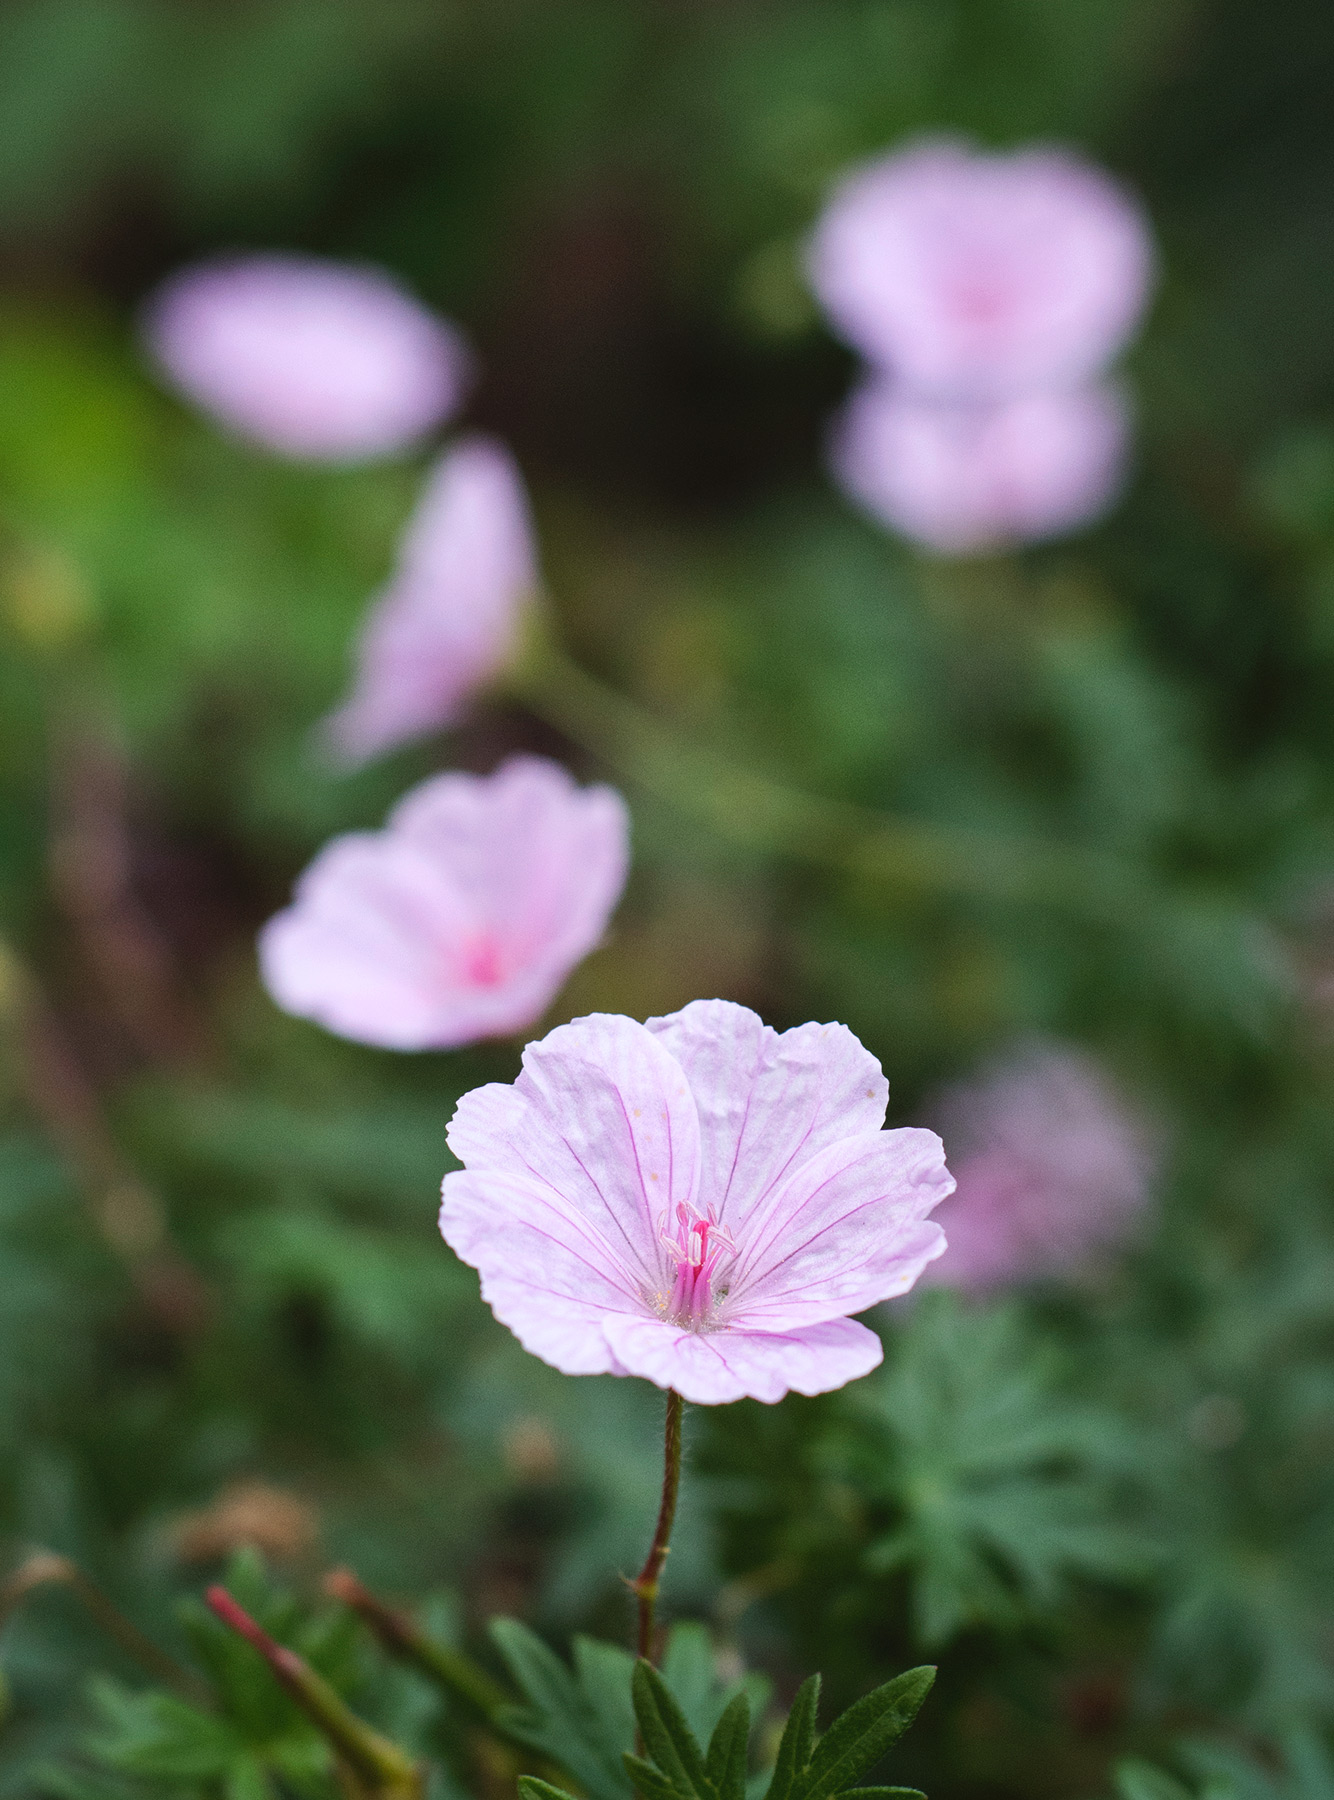 Small pink flower